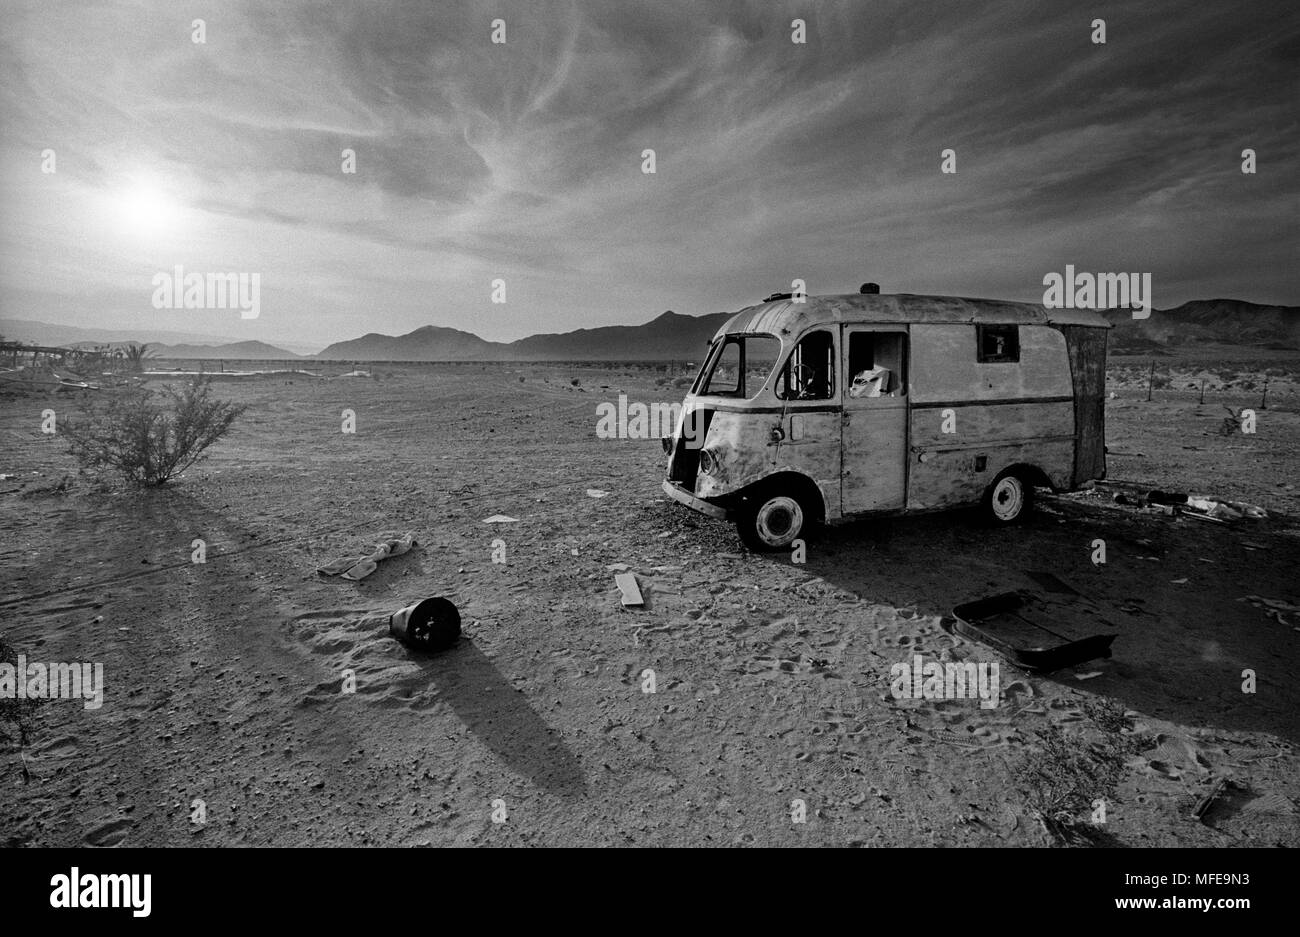 Death Valley,California,USA. Wreckage of a camper van in Death Valley, California,USA. COPYRIGHT PHOTOGRAPH BY BRIAN HARRIS  © 07808-579804 - Stock Image